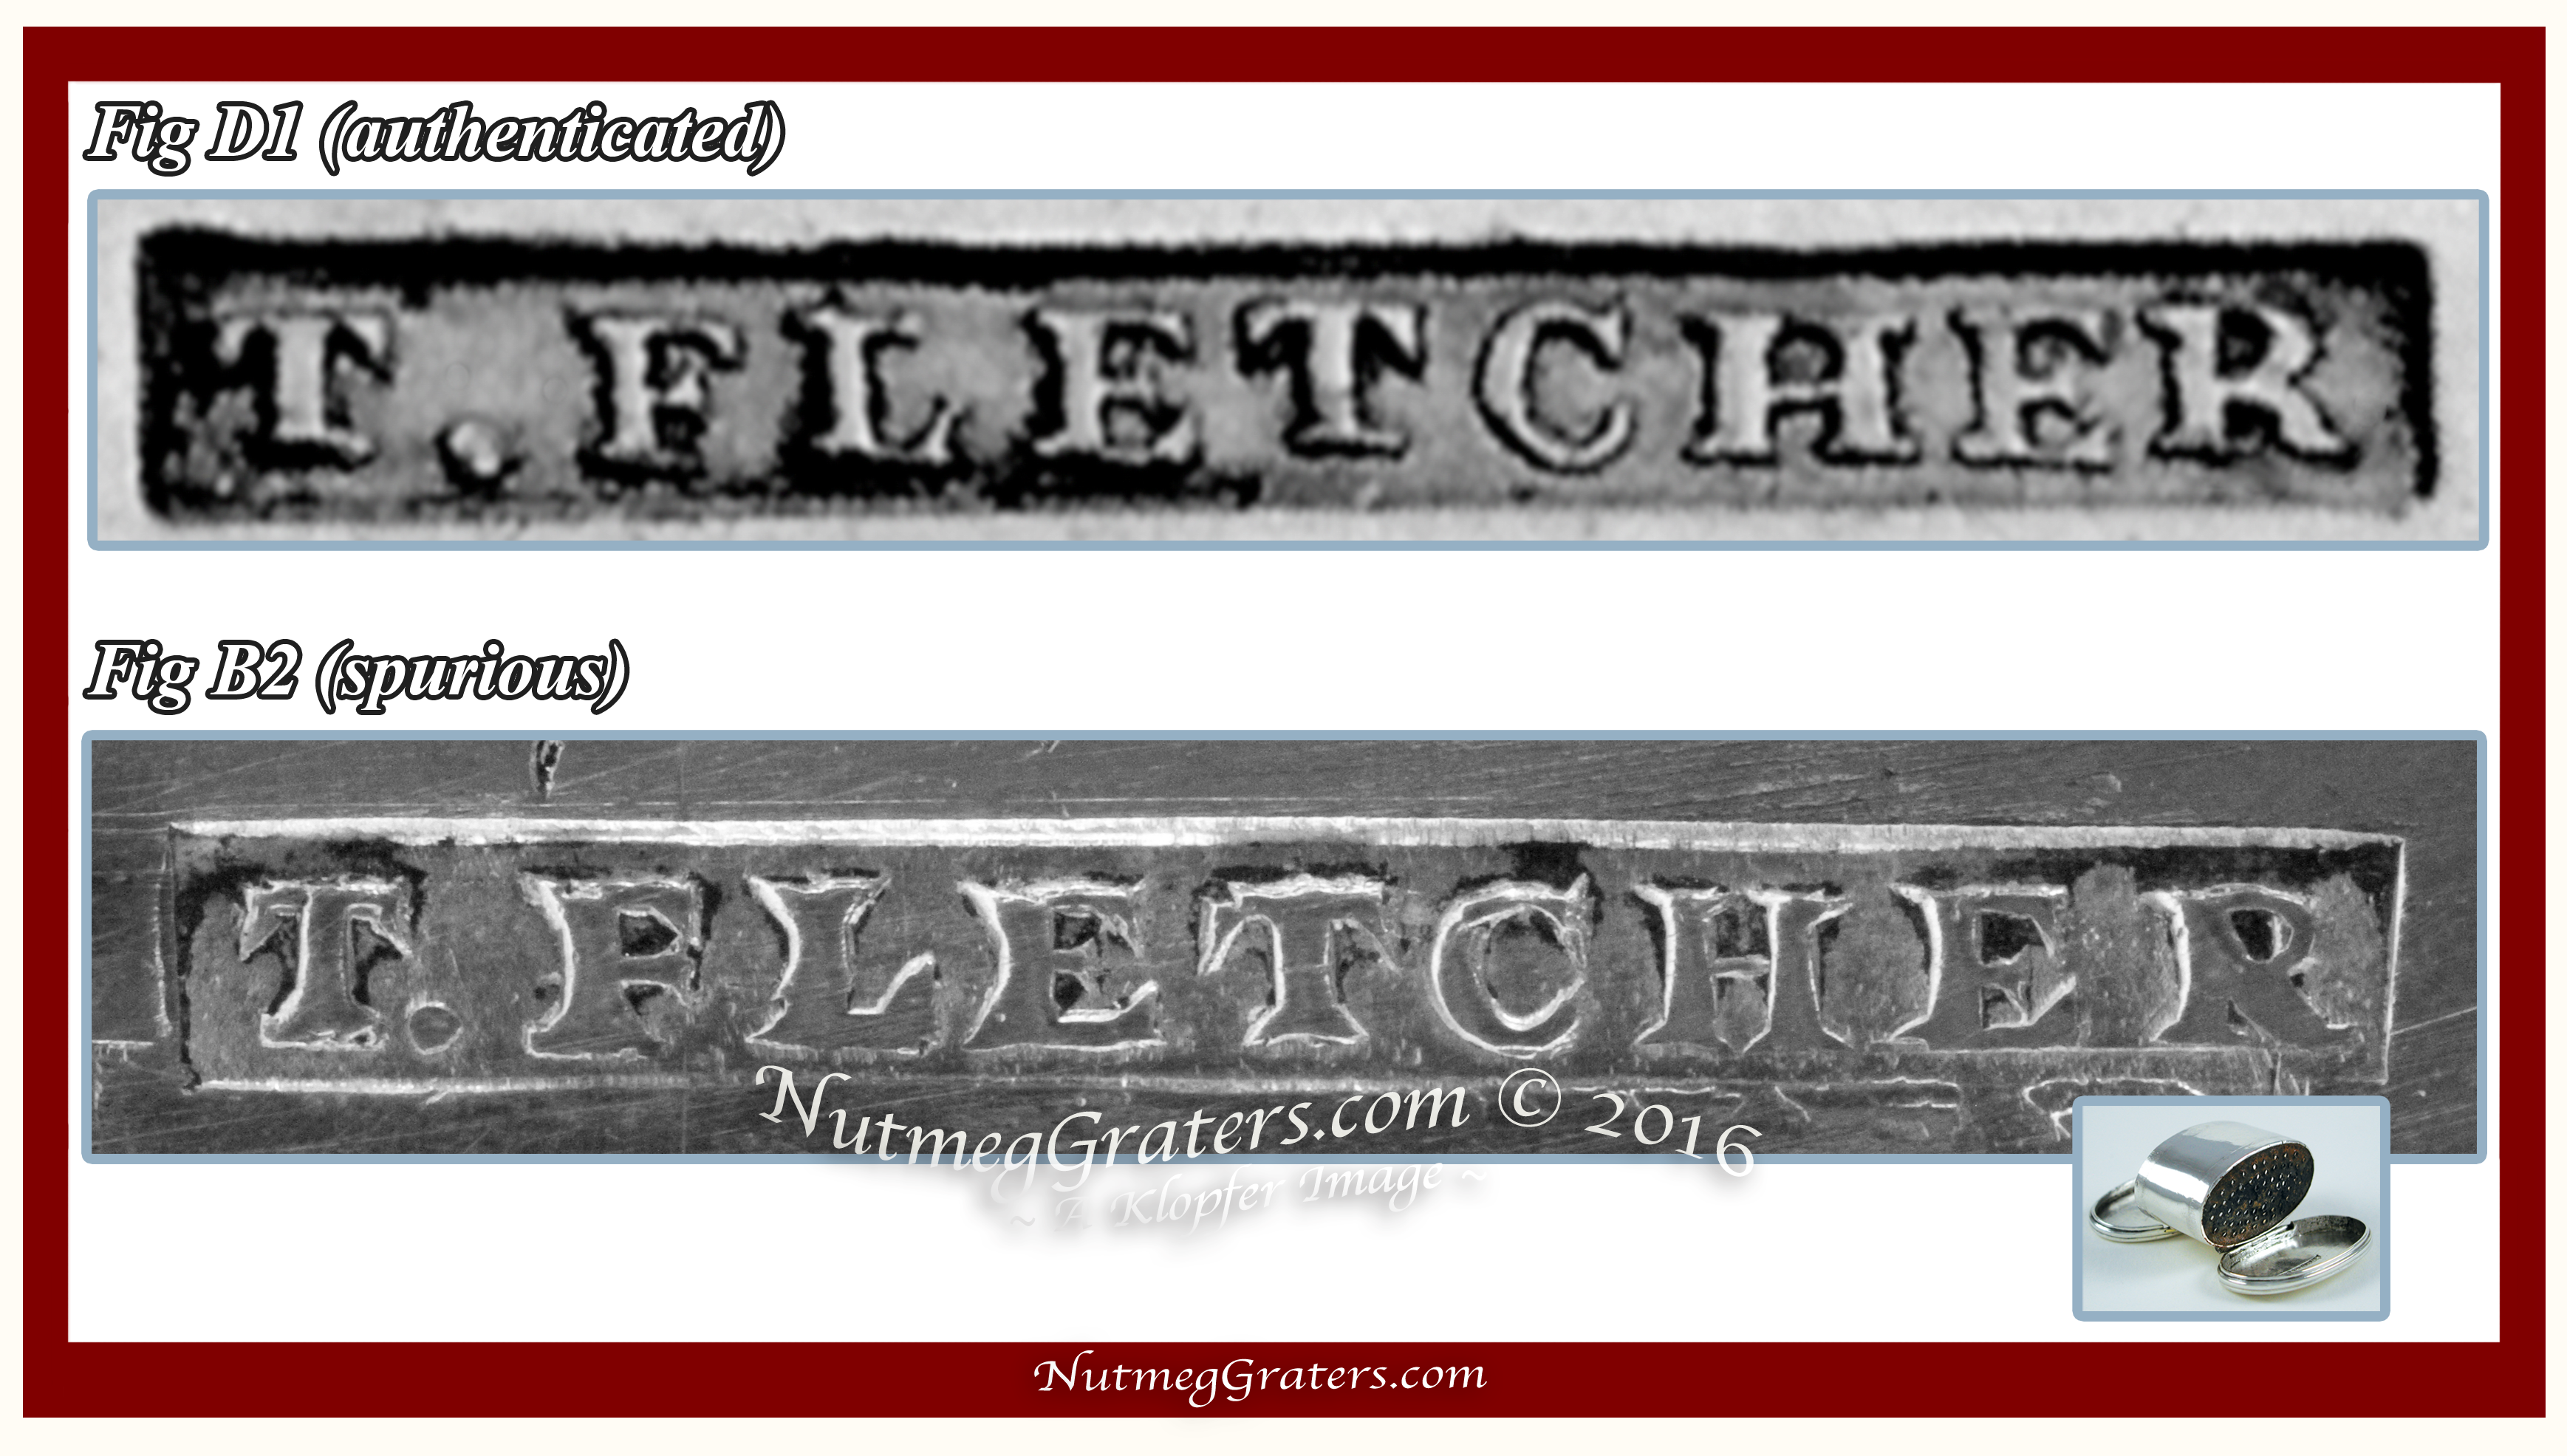 Comparison of Authenticated VS Spurious Fletcher maker's mark